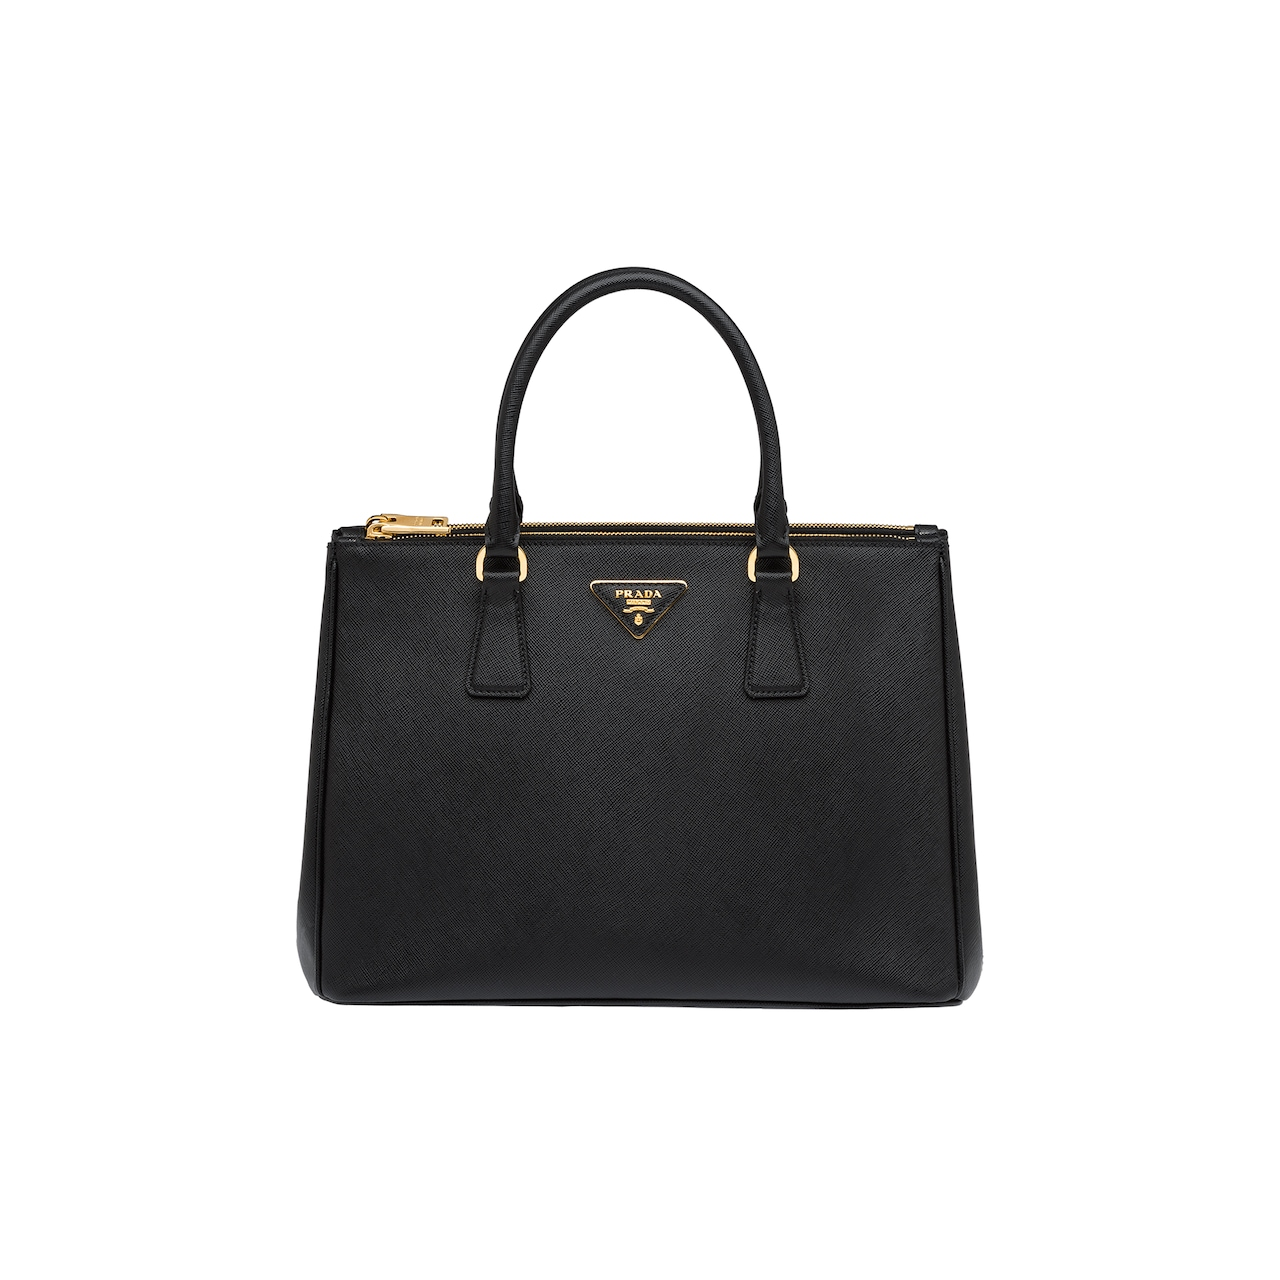 Prada Prada Galleria Medium Saffiano Leather Bag 1